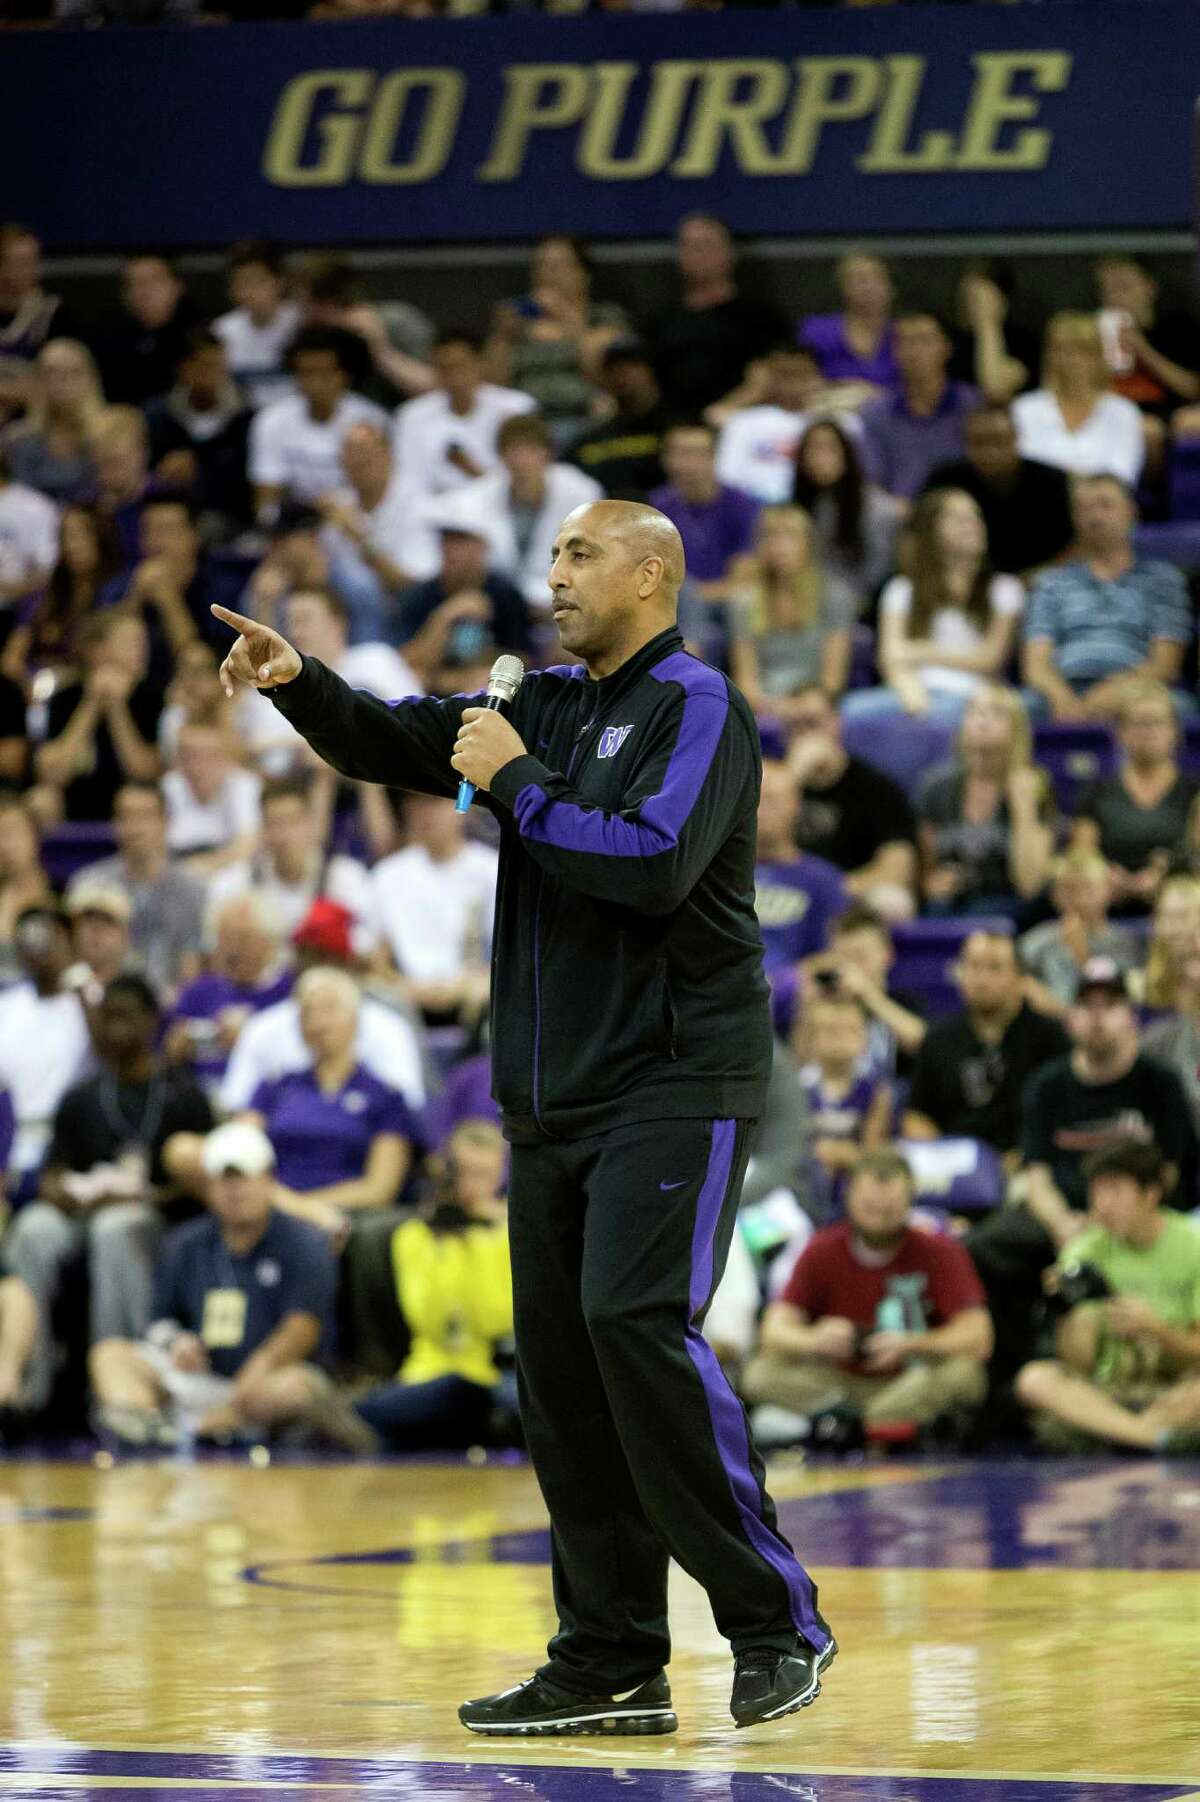 UW men's basketball head coach Lorenzo Romar addresses the audience during the University of Washington Alumni Game Sunday, June 23, 2013, in the Alaska Airlines Arena at the University of Washington in Seattle. The after-2009 team, in purple, beat the pre-2009 team, in white, 107-104.